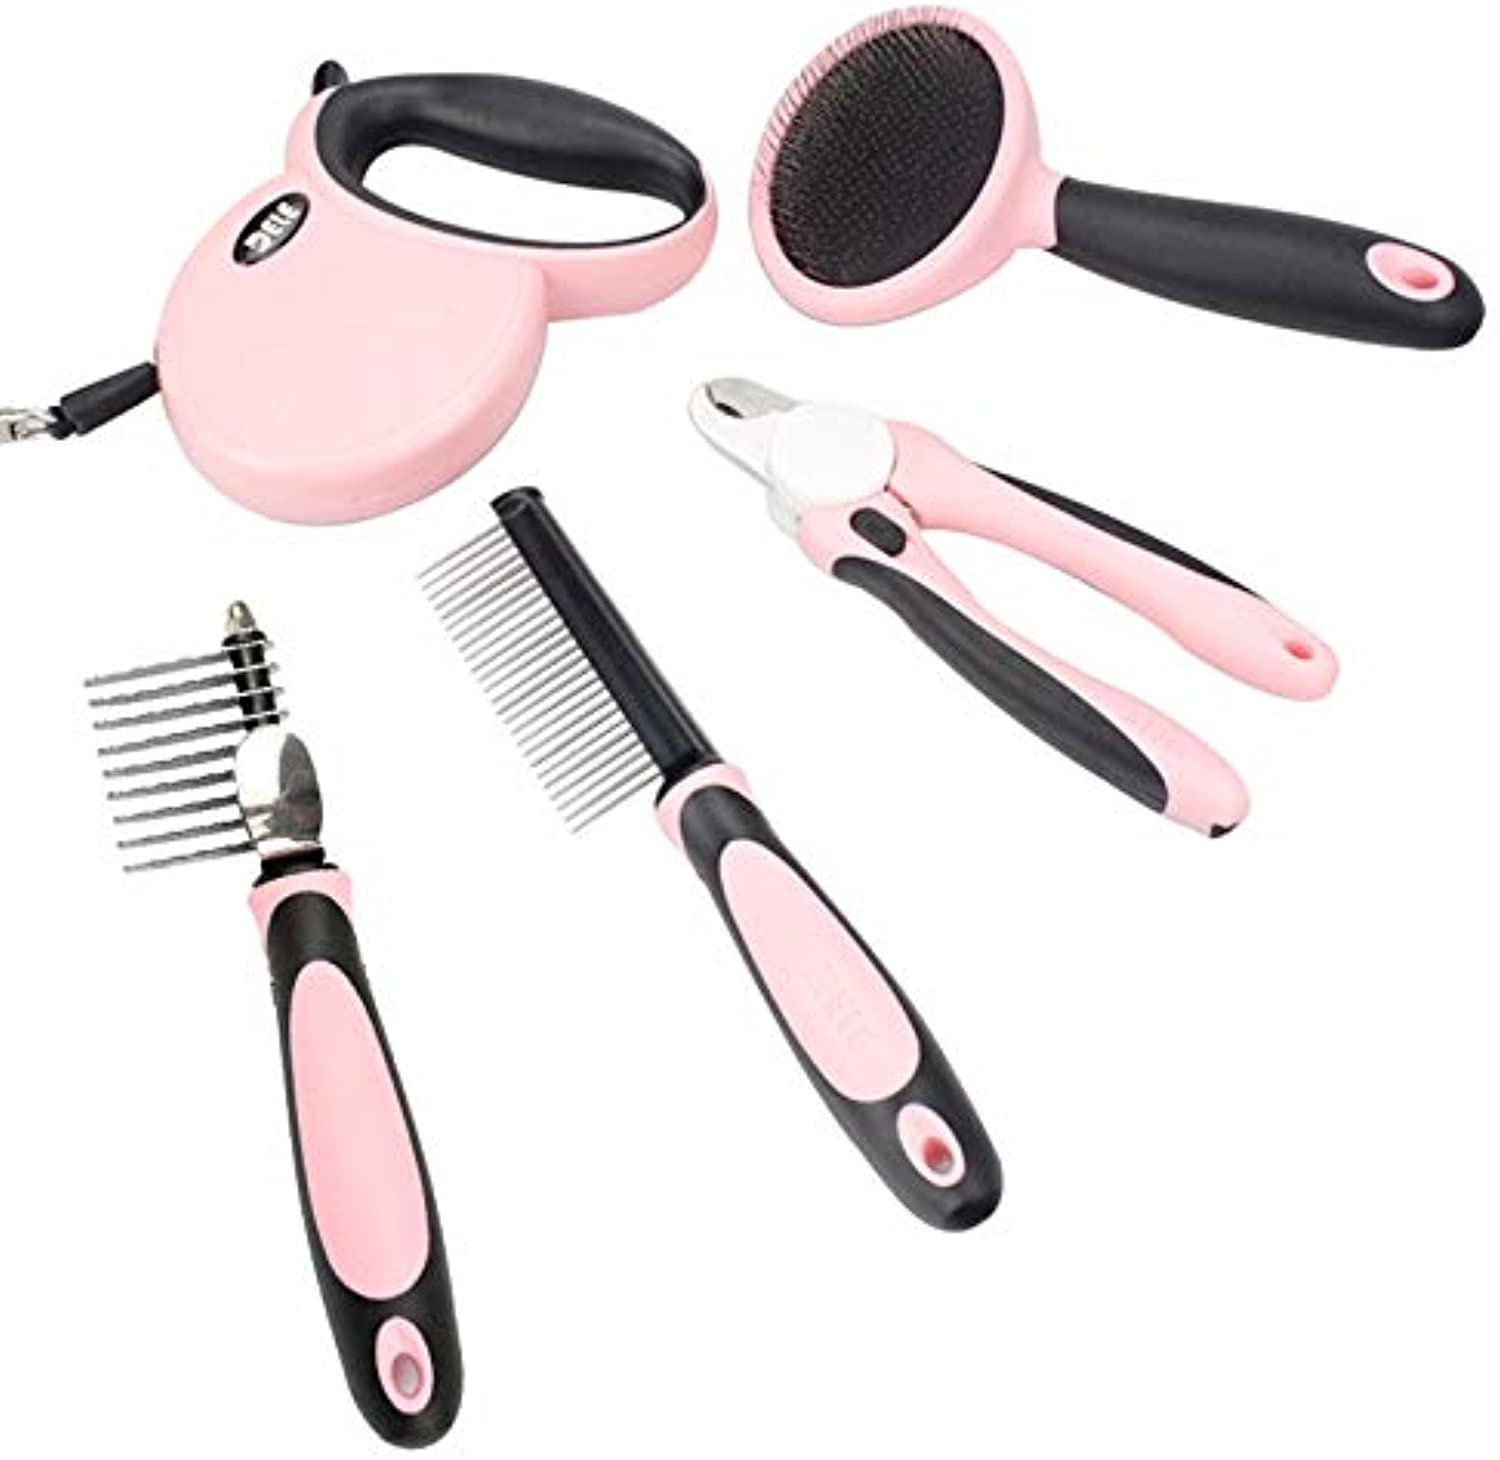 DELE Pet Grooming Tools Kit Including 5 Professional Tools,Pin Comb, Nail Clipper, Slicker Brush, Dematting Comb, 9.8 ft Retractable Dog Leash,Suitable for Pet Dogs or Cats (Pink).